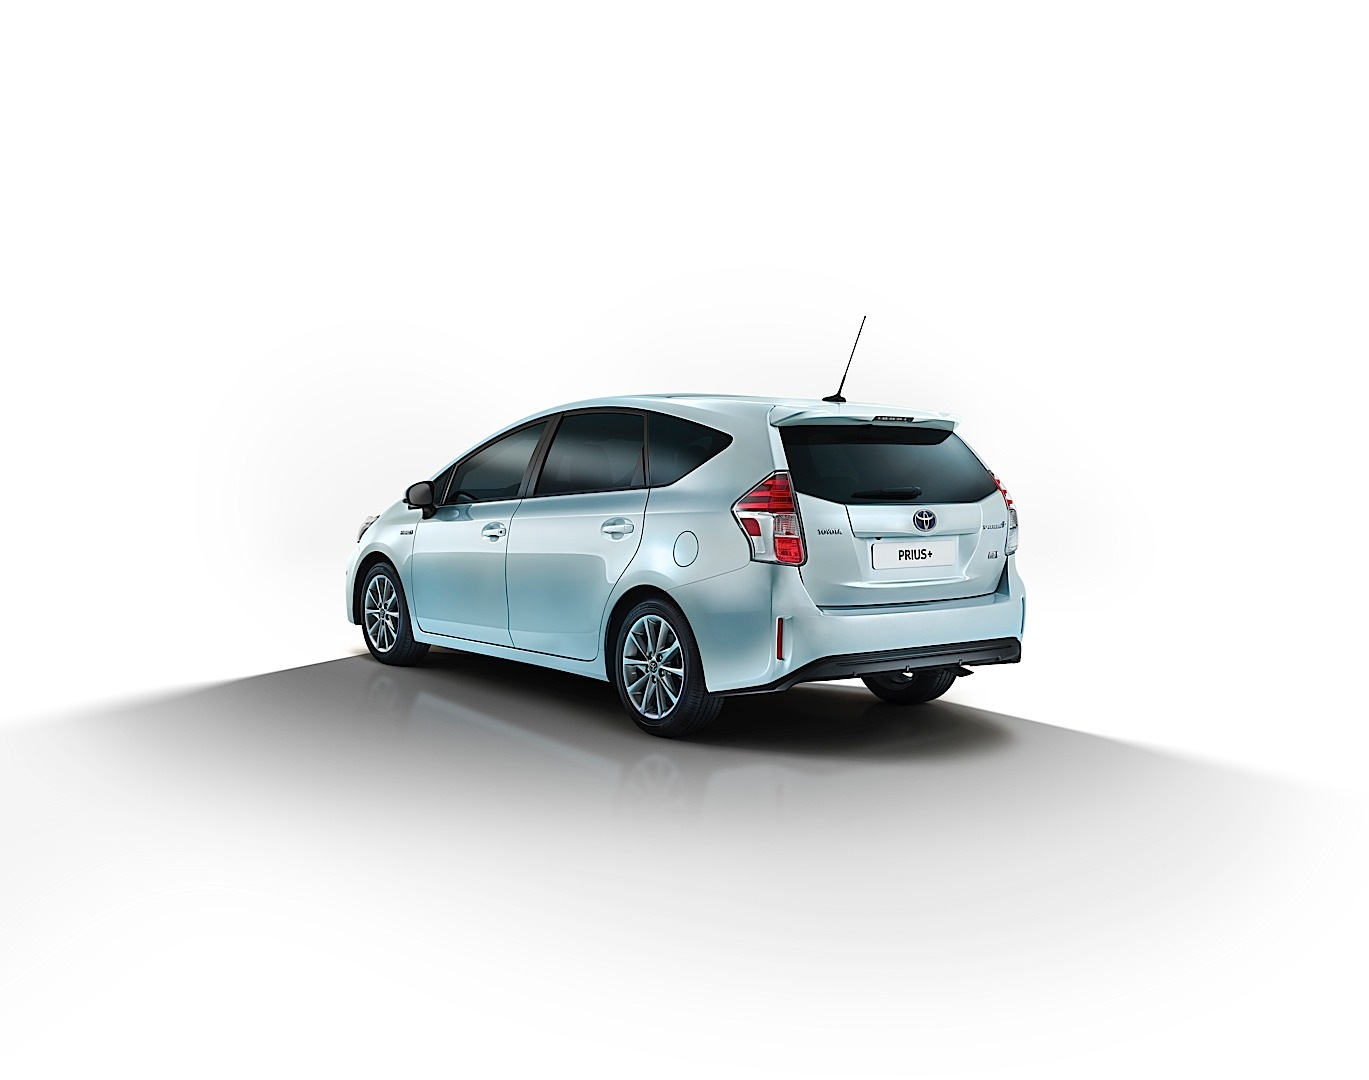 toyota prius v gets an angry face for 2015 autoevolution. Black Bedroom Furniture Sets. Home Design Ideas